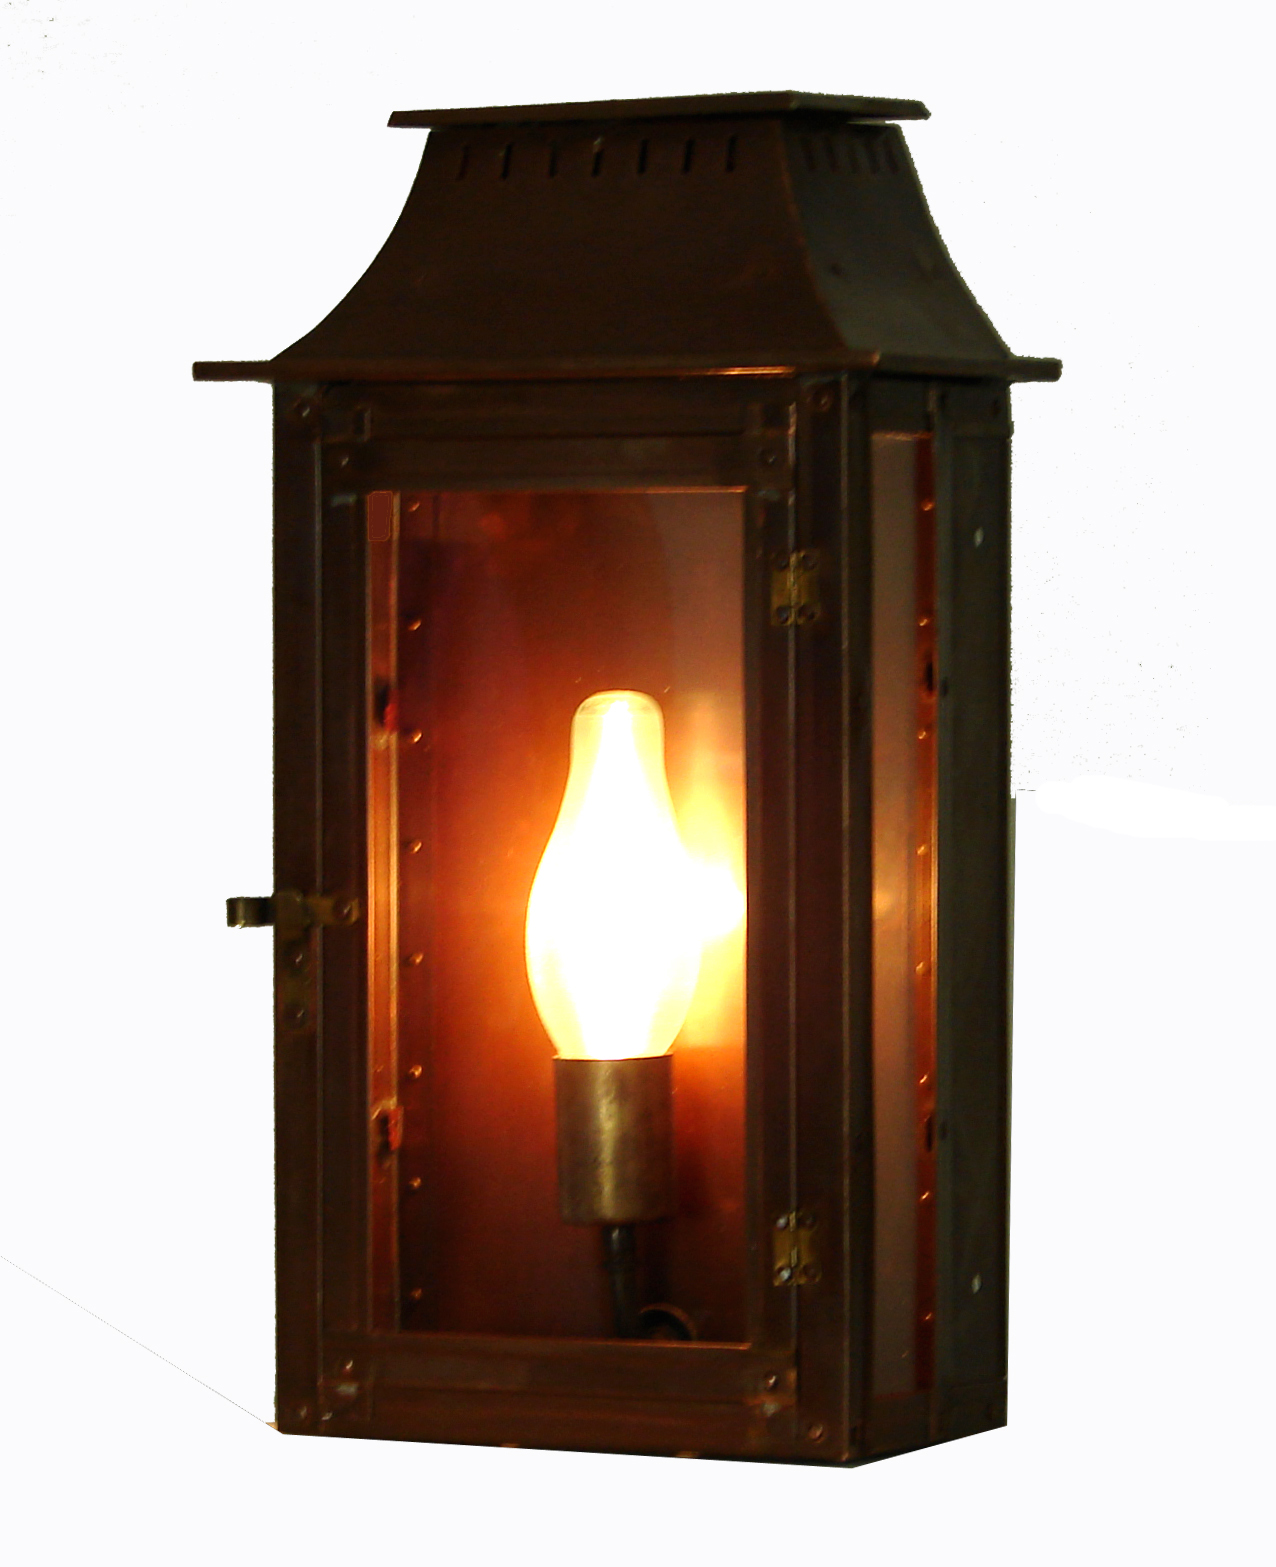 Williamsburg with FLO_GLO PRO SERIES STEALTH IGNITER | Gas Light Pro ... for Gaslight Lantern  197uhy